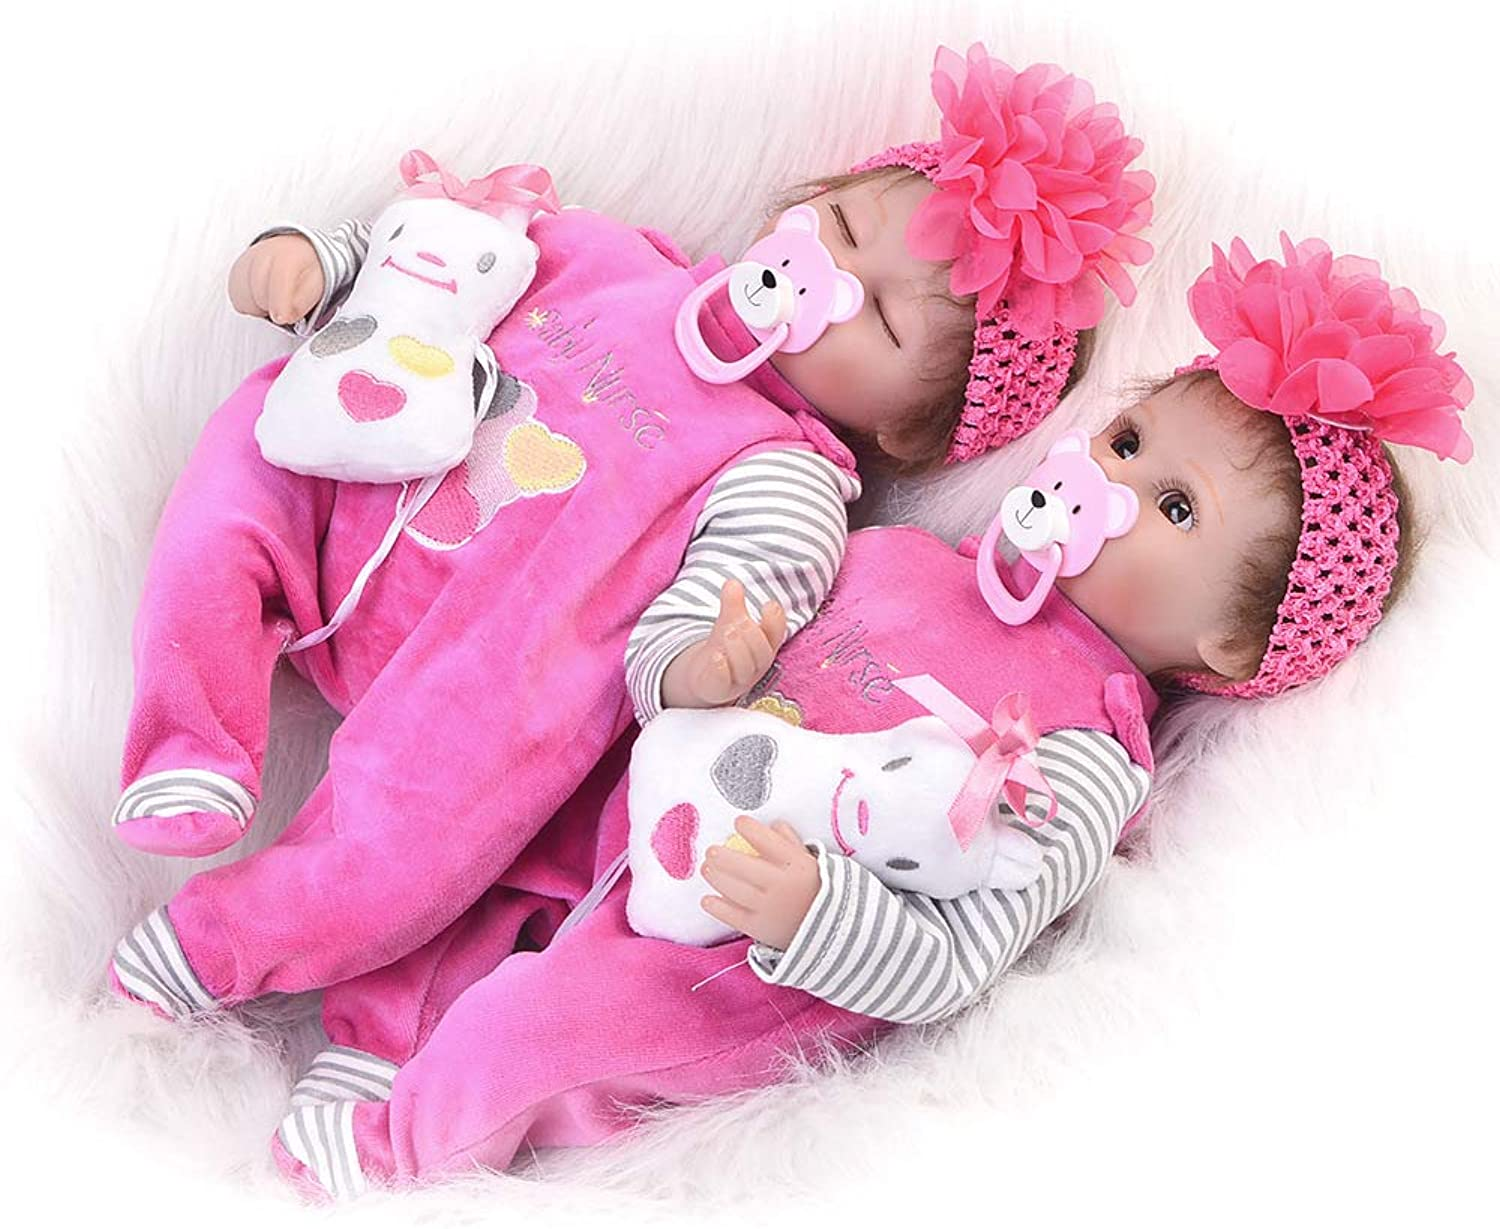 Homesave Reborn Baby Doll Twin Sisters, Soft Simulation Vinyl 17 Inch 43 Cm Birthday Gift for Twin Sisters 2PCS